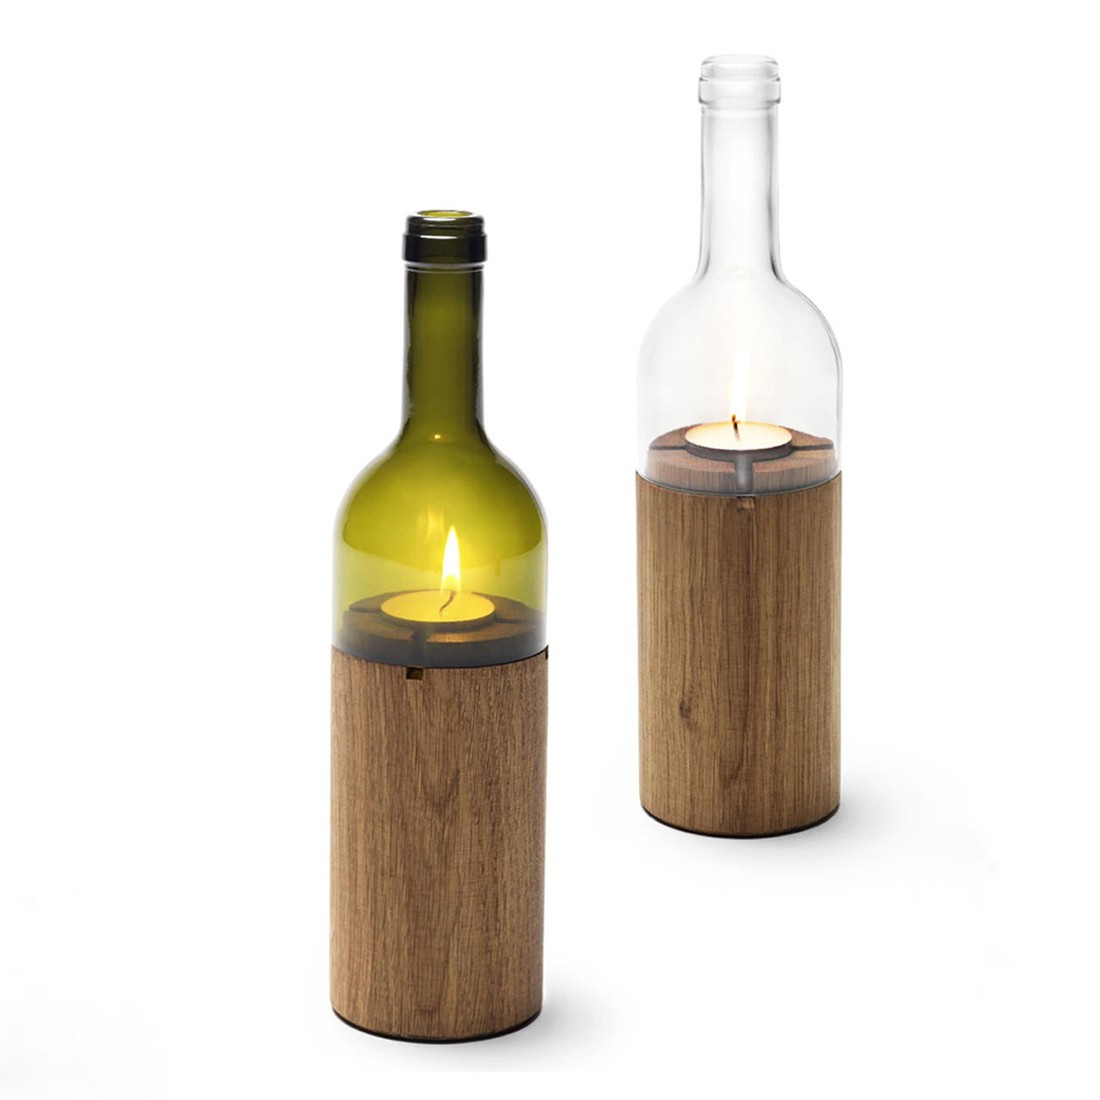 glass vase for wine corks of winelicht lugi obchod intended for winelicht